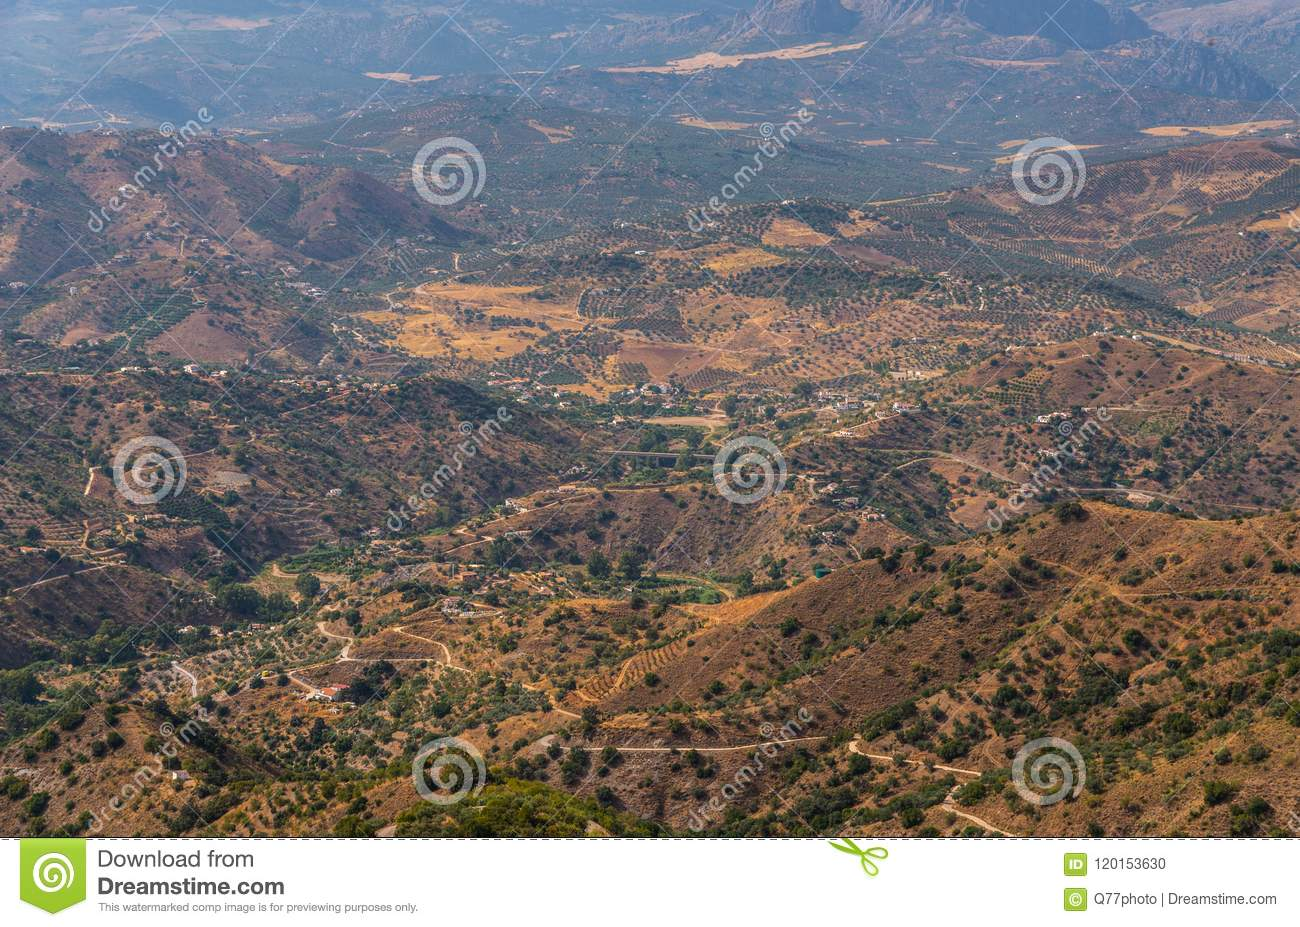 beautiful view of the mountains in the region of Andalusia, houses and farmland on the slopes of mountains